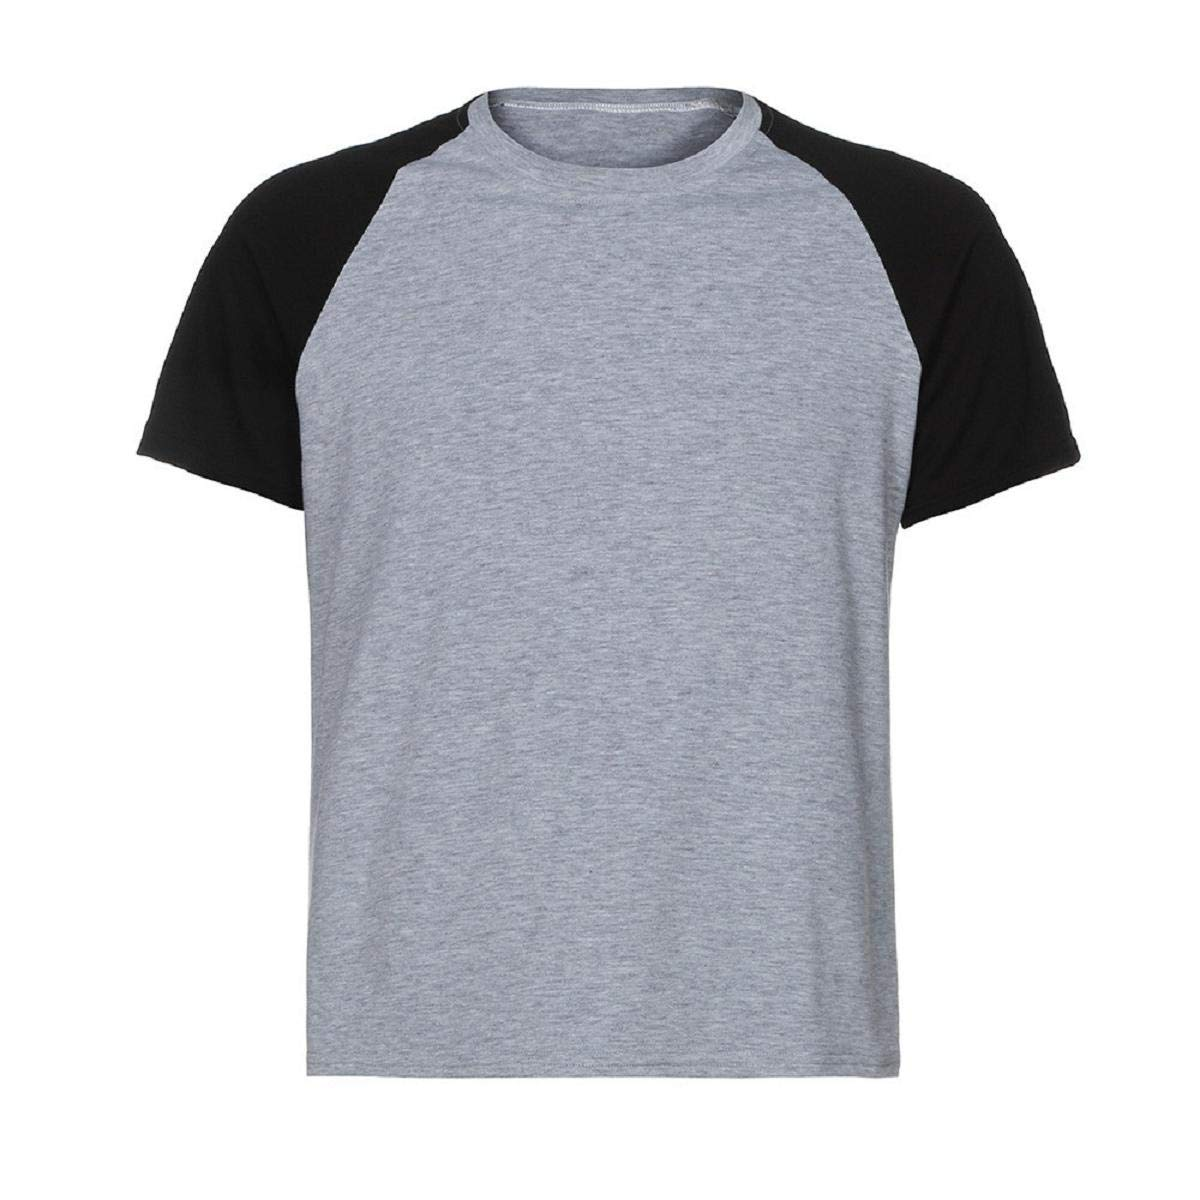 MISYAA Muscle T Shirts for Men Color Match Short Sleeve Tank Top Breathable Sport Tees Tight Activewear Gifts Mens Tops